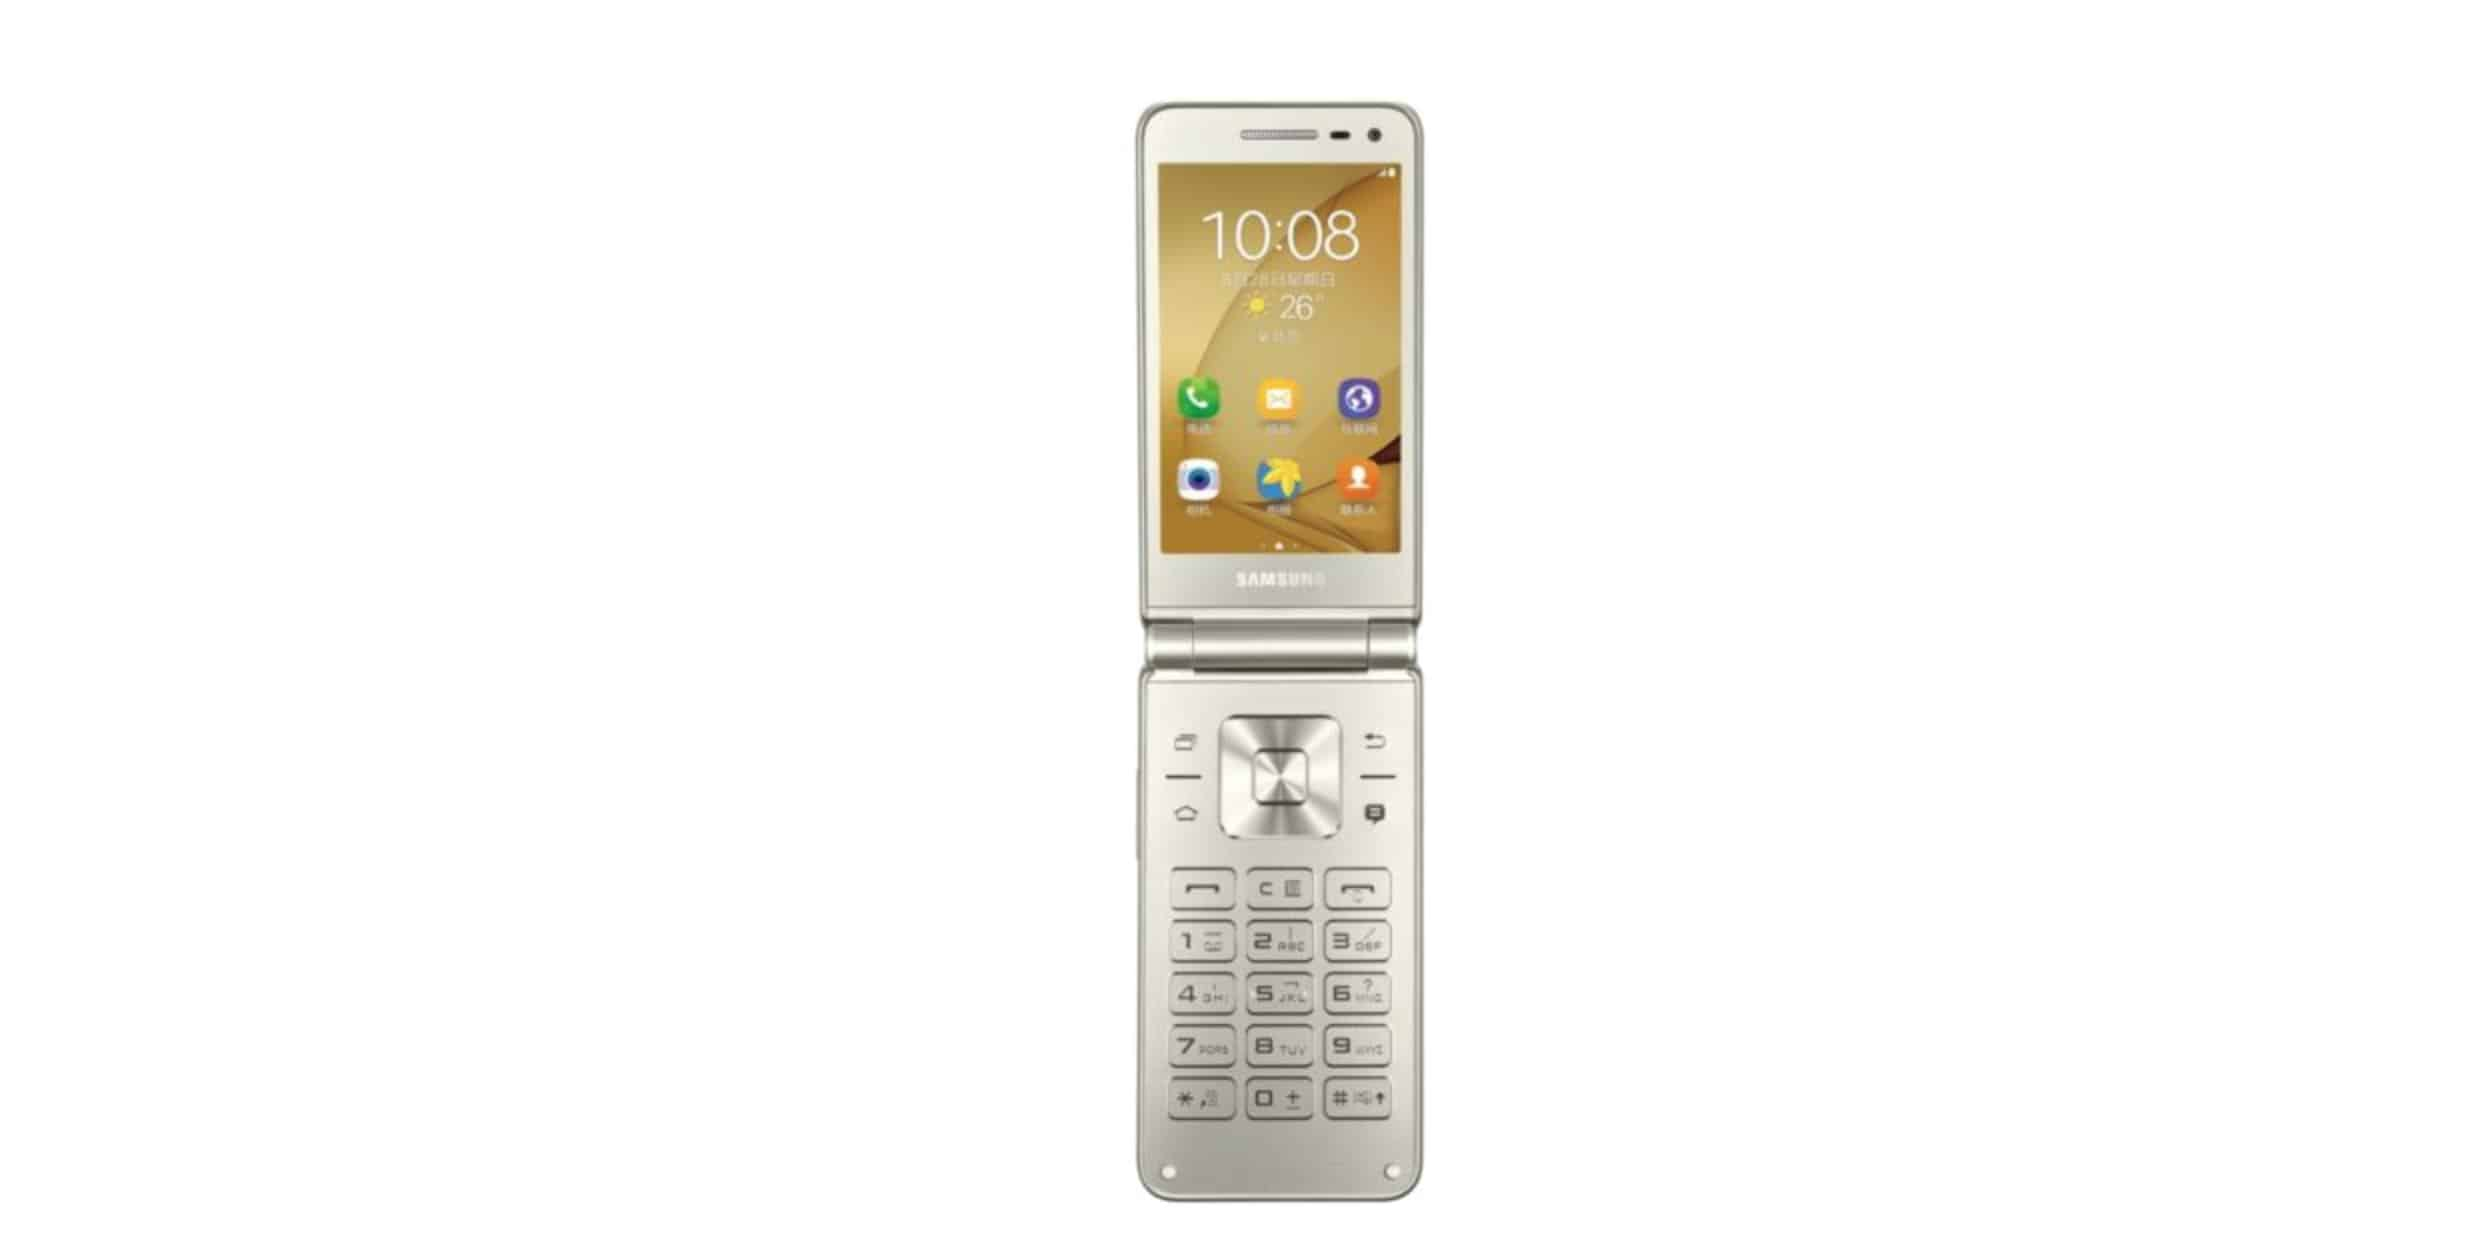 Samsung Galaxy Folder 2 SM G1600 02